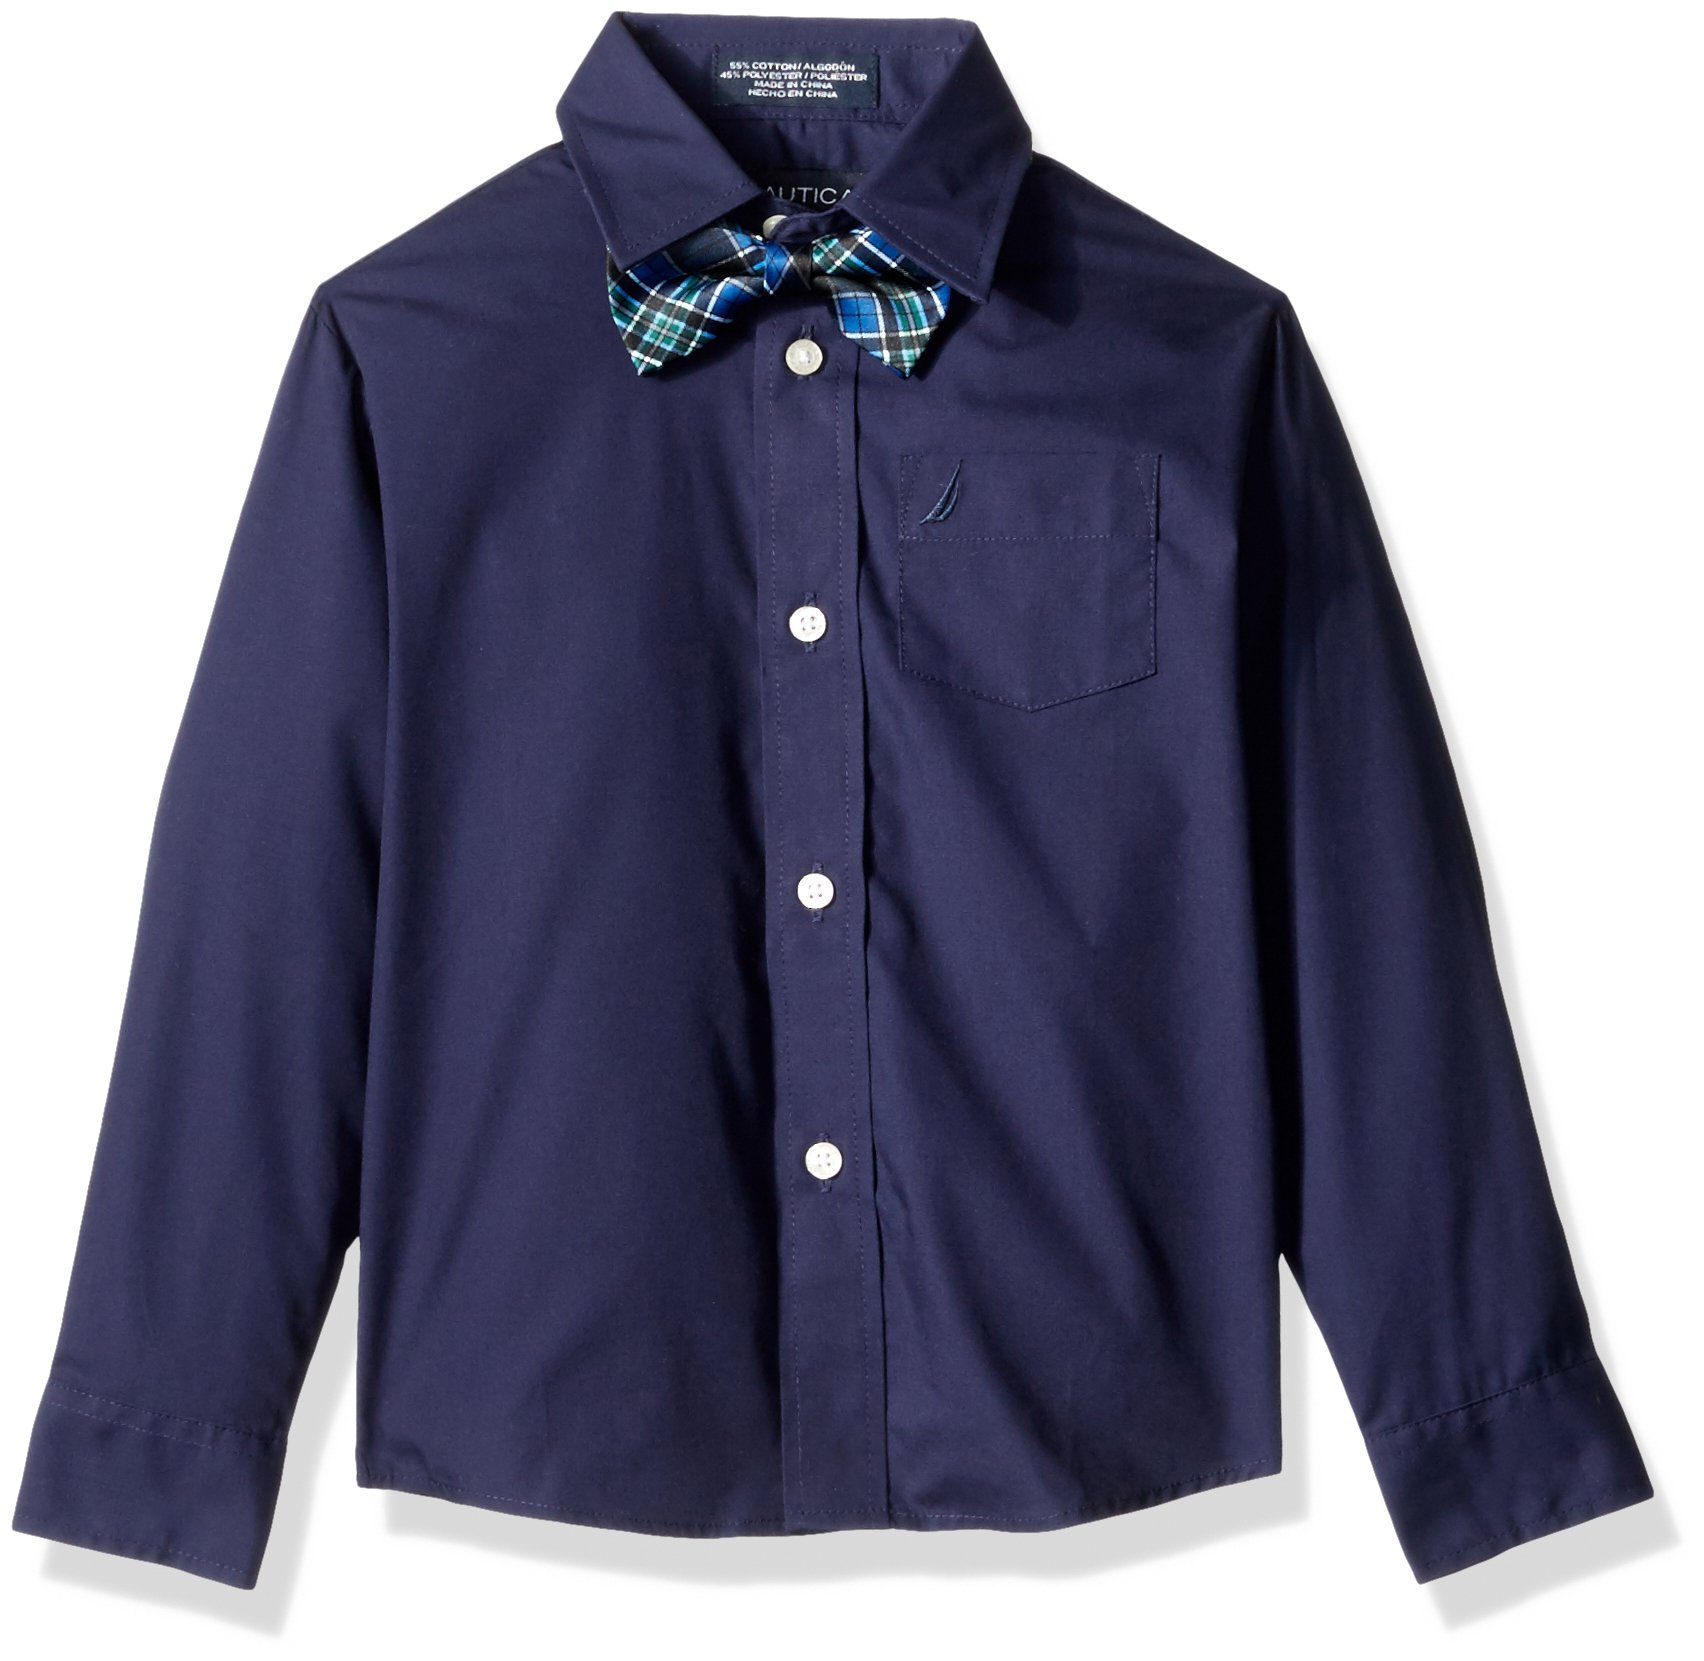 Nautica Little Boys Long Sleeve Solid Shirt with Bow Tie, Peacoat, 4